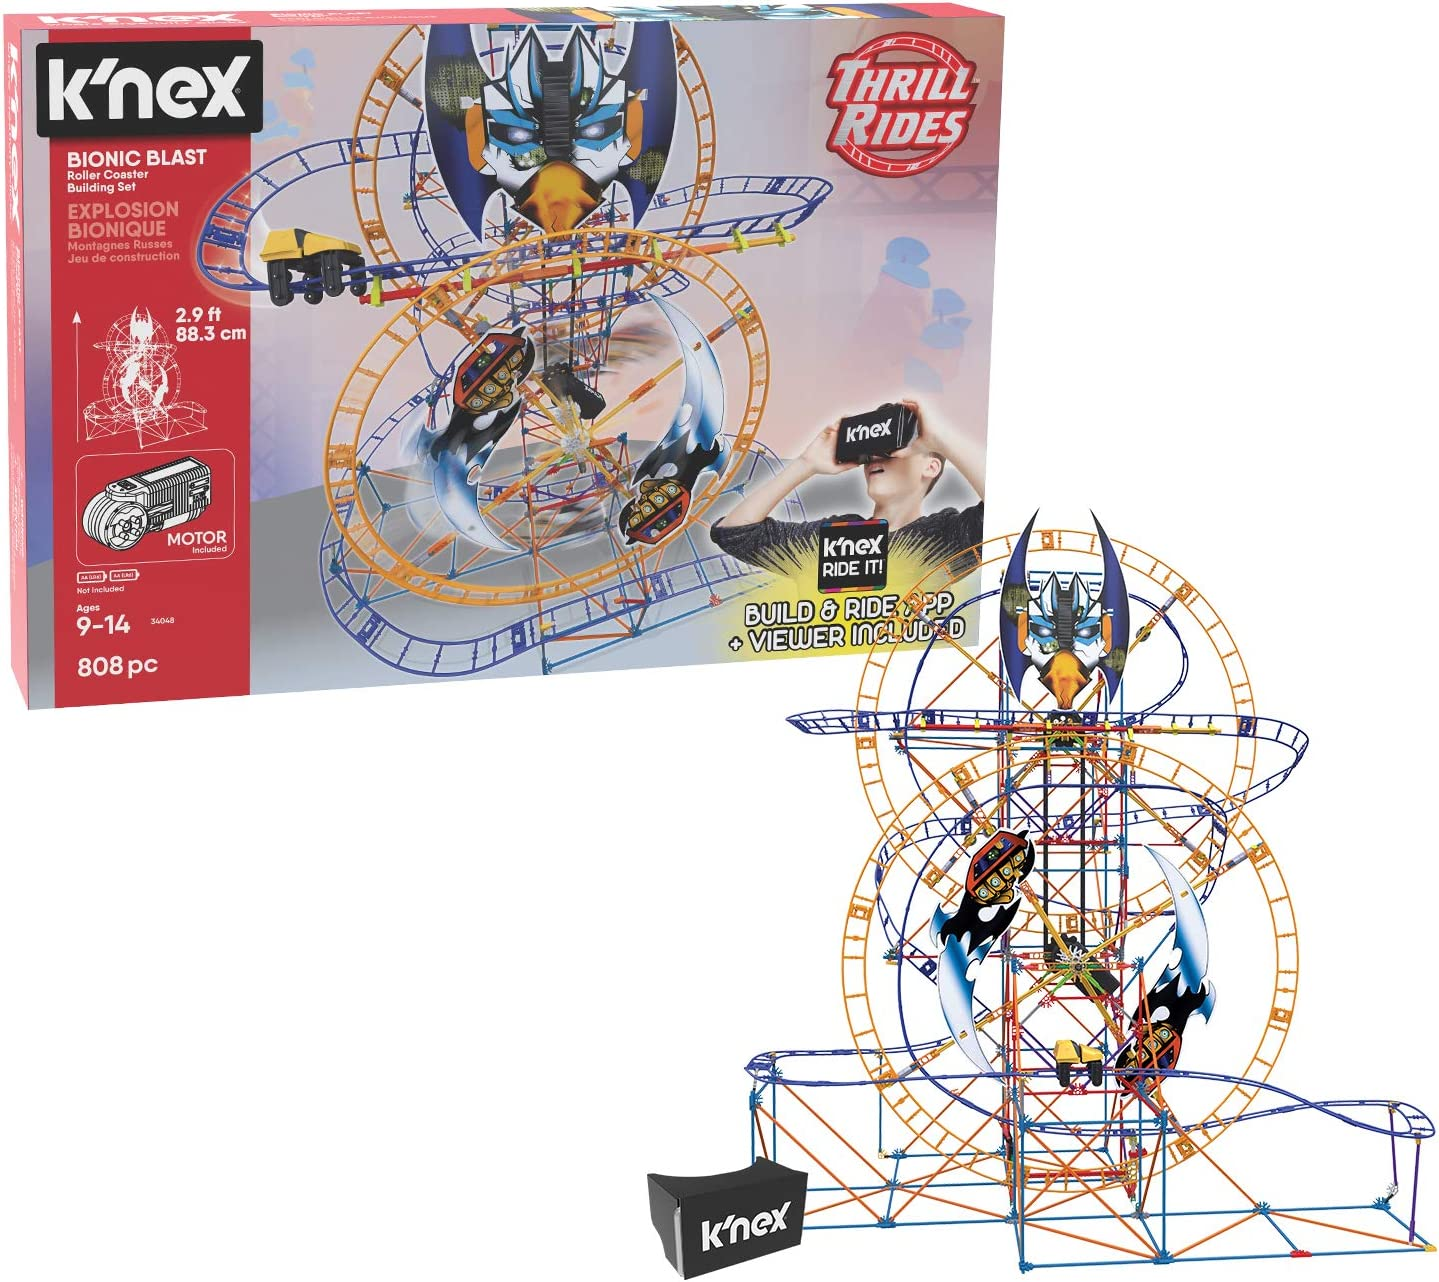 K Nex Thrill Rides Bionic Blast Roller Coaster Building Set With Ride It App 809piece Ages 9 Building Set Toys Games